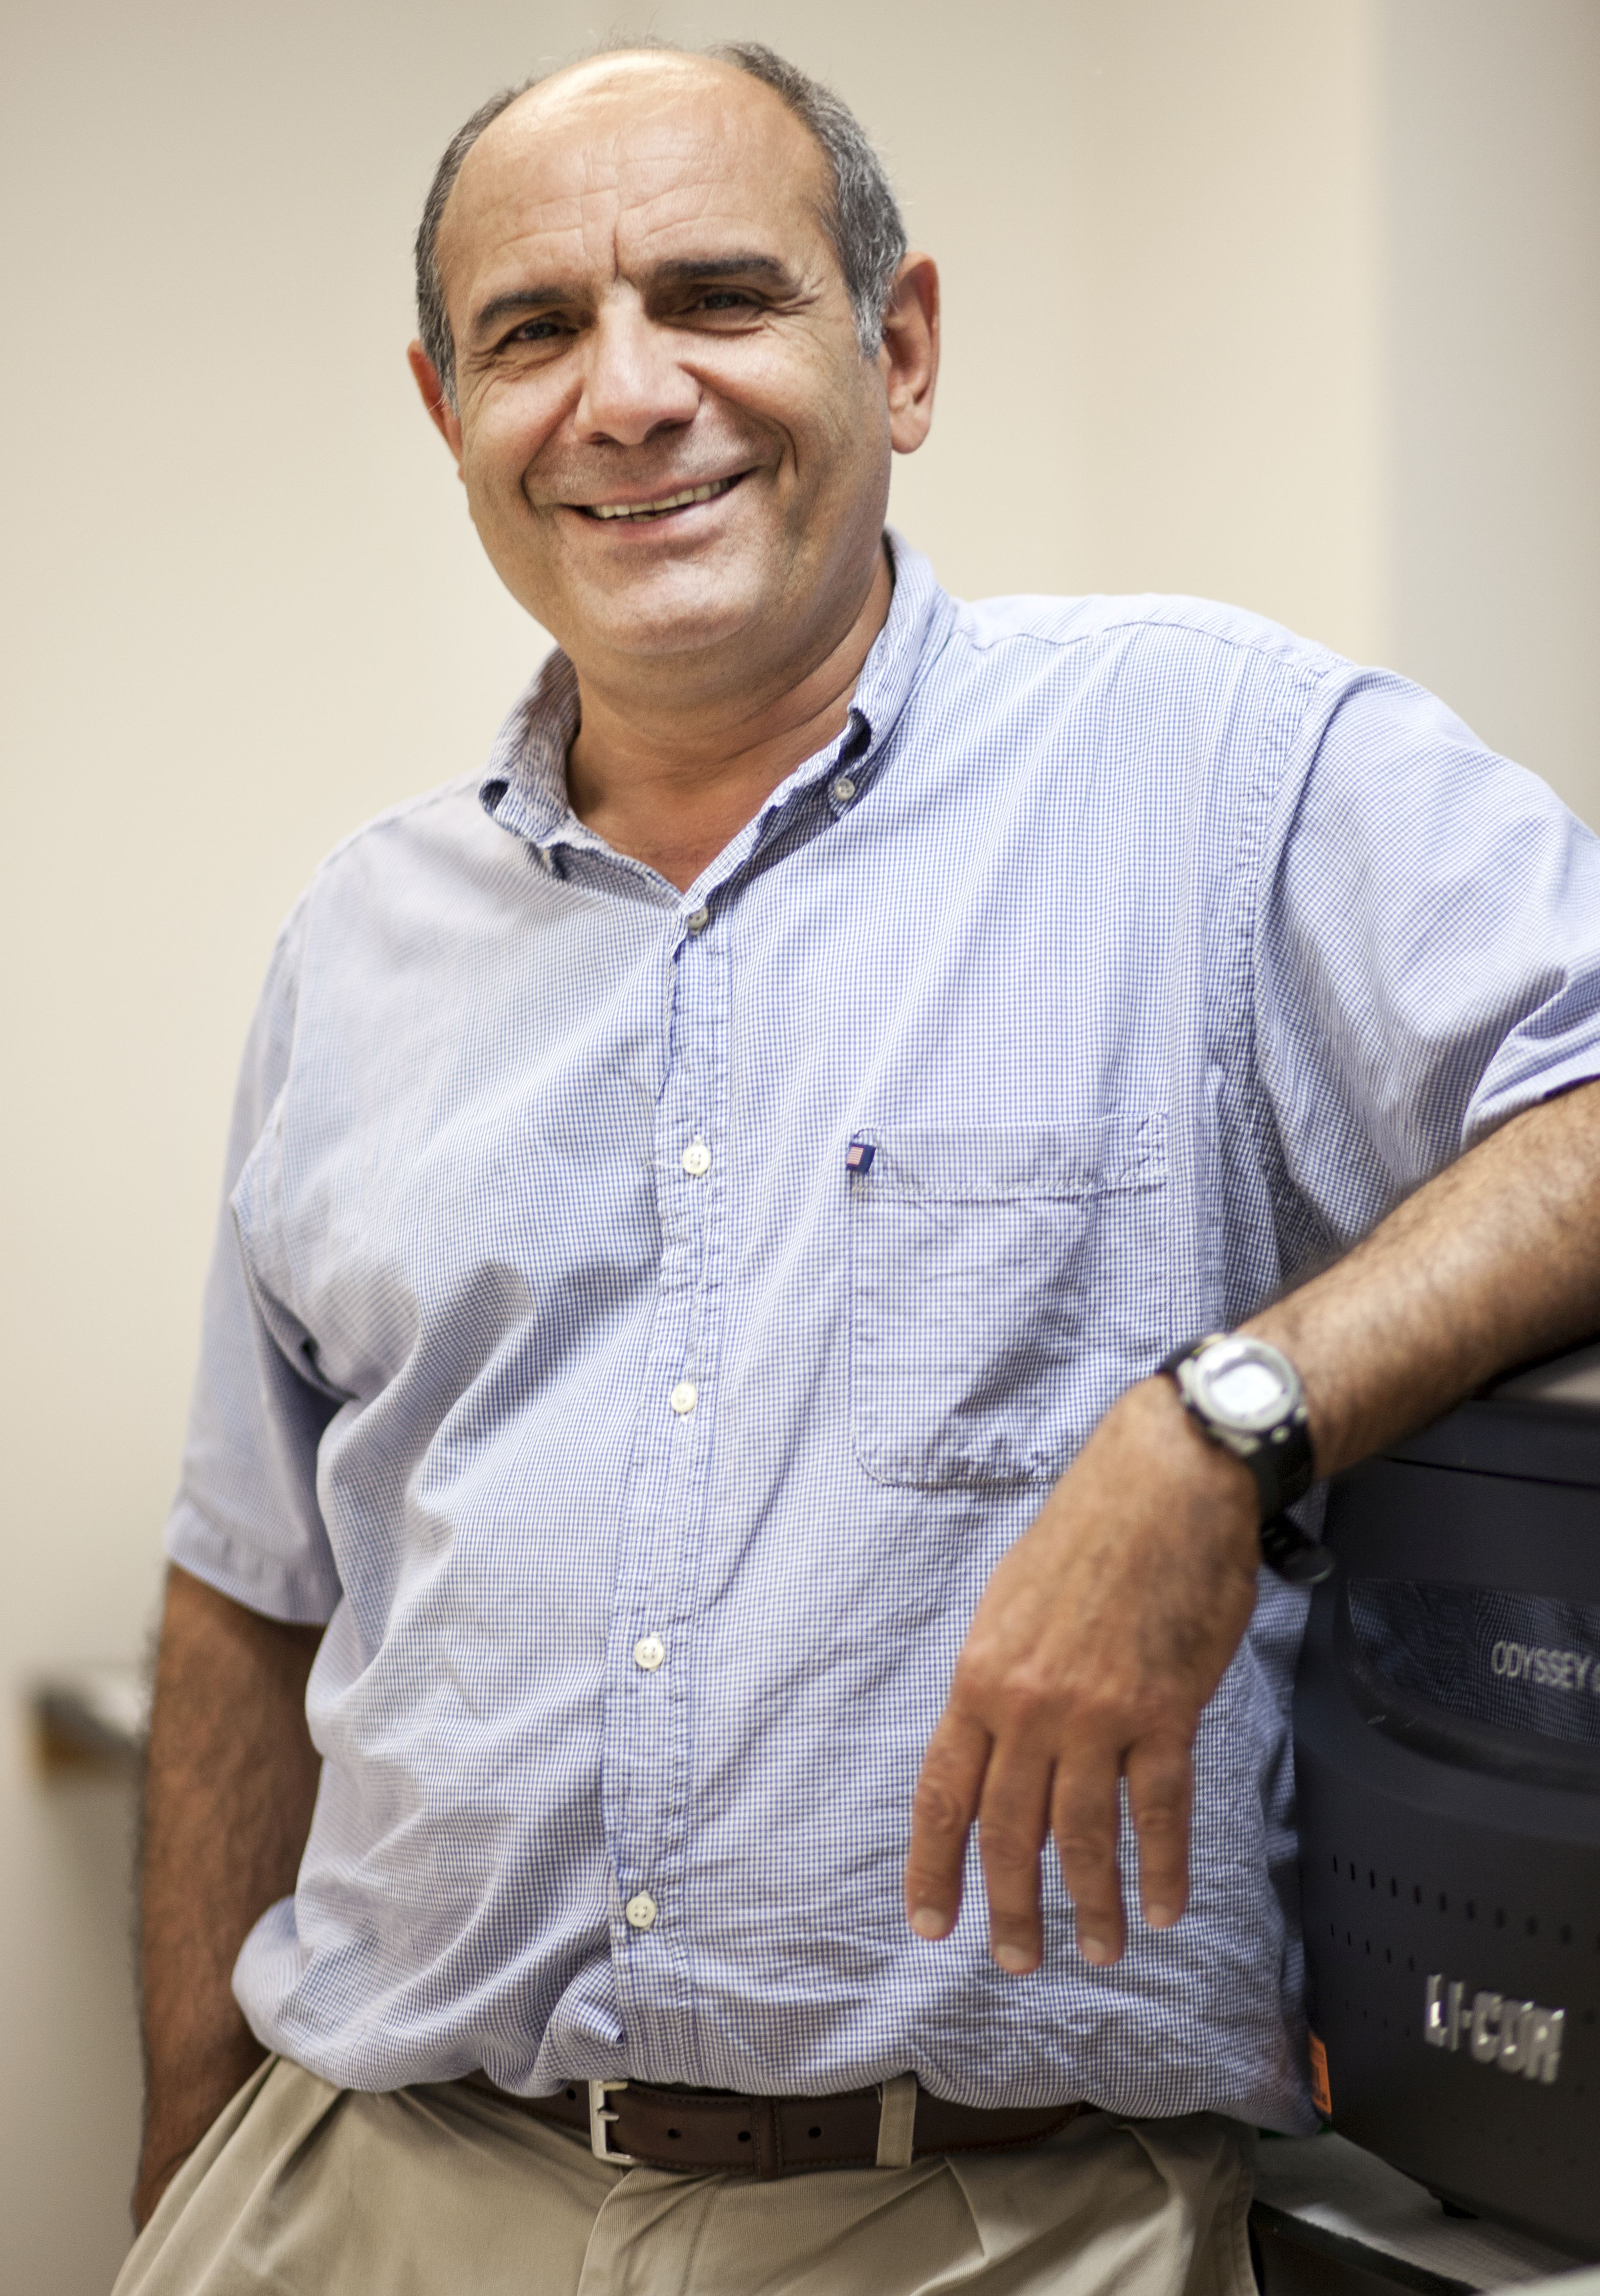 Dr. Mohamadzadeh